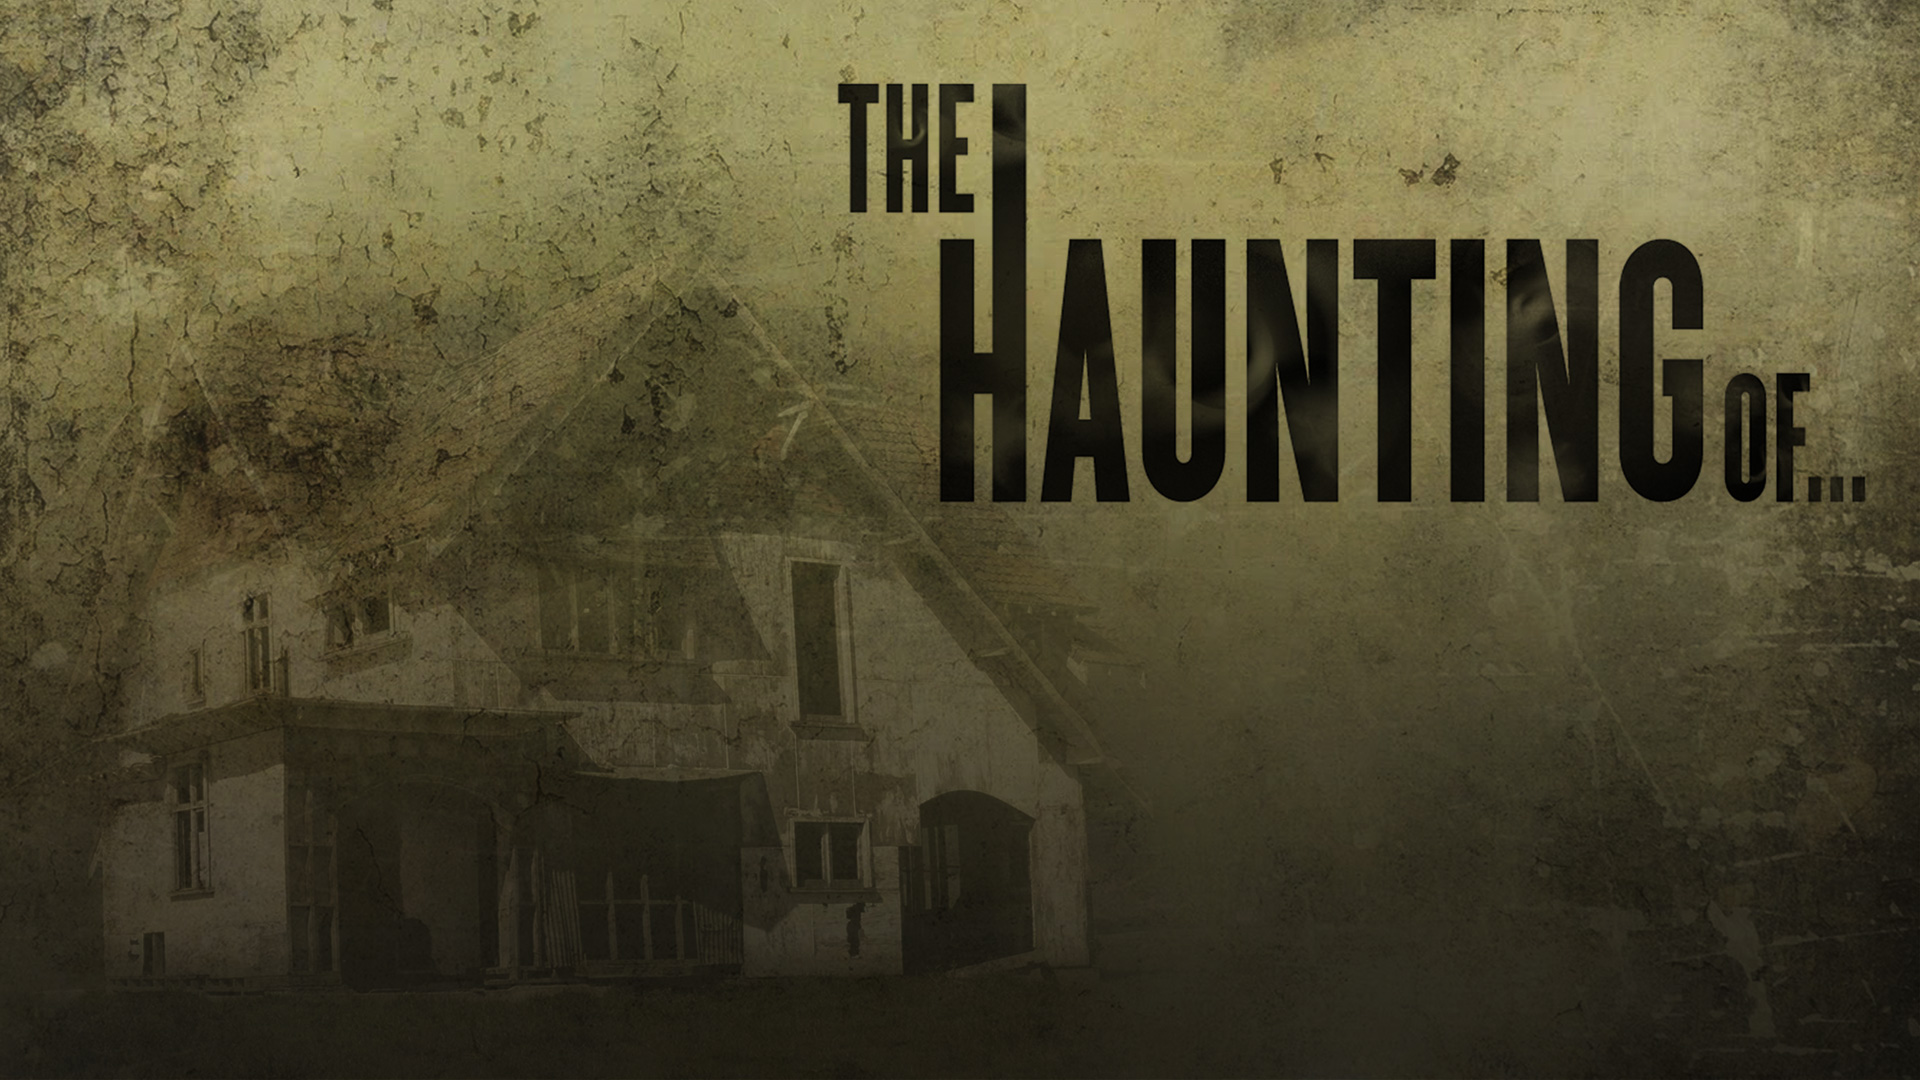 The Haunting Of. . .